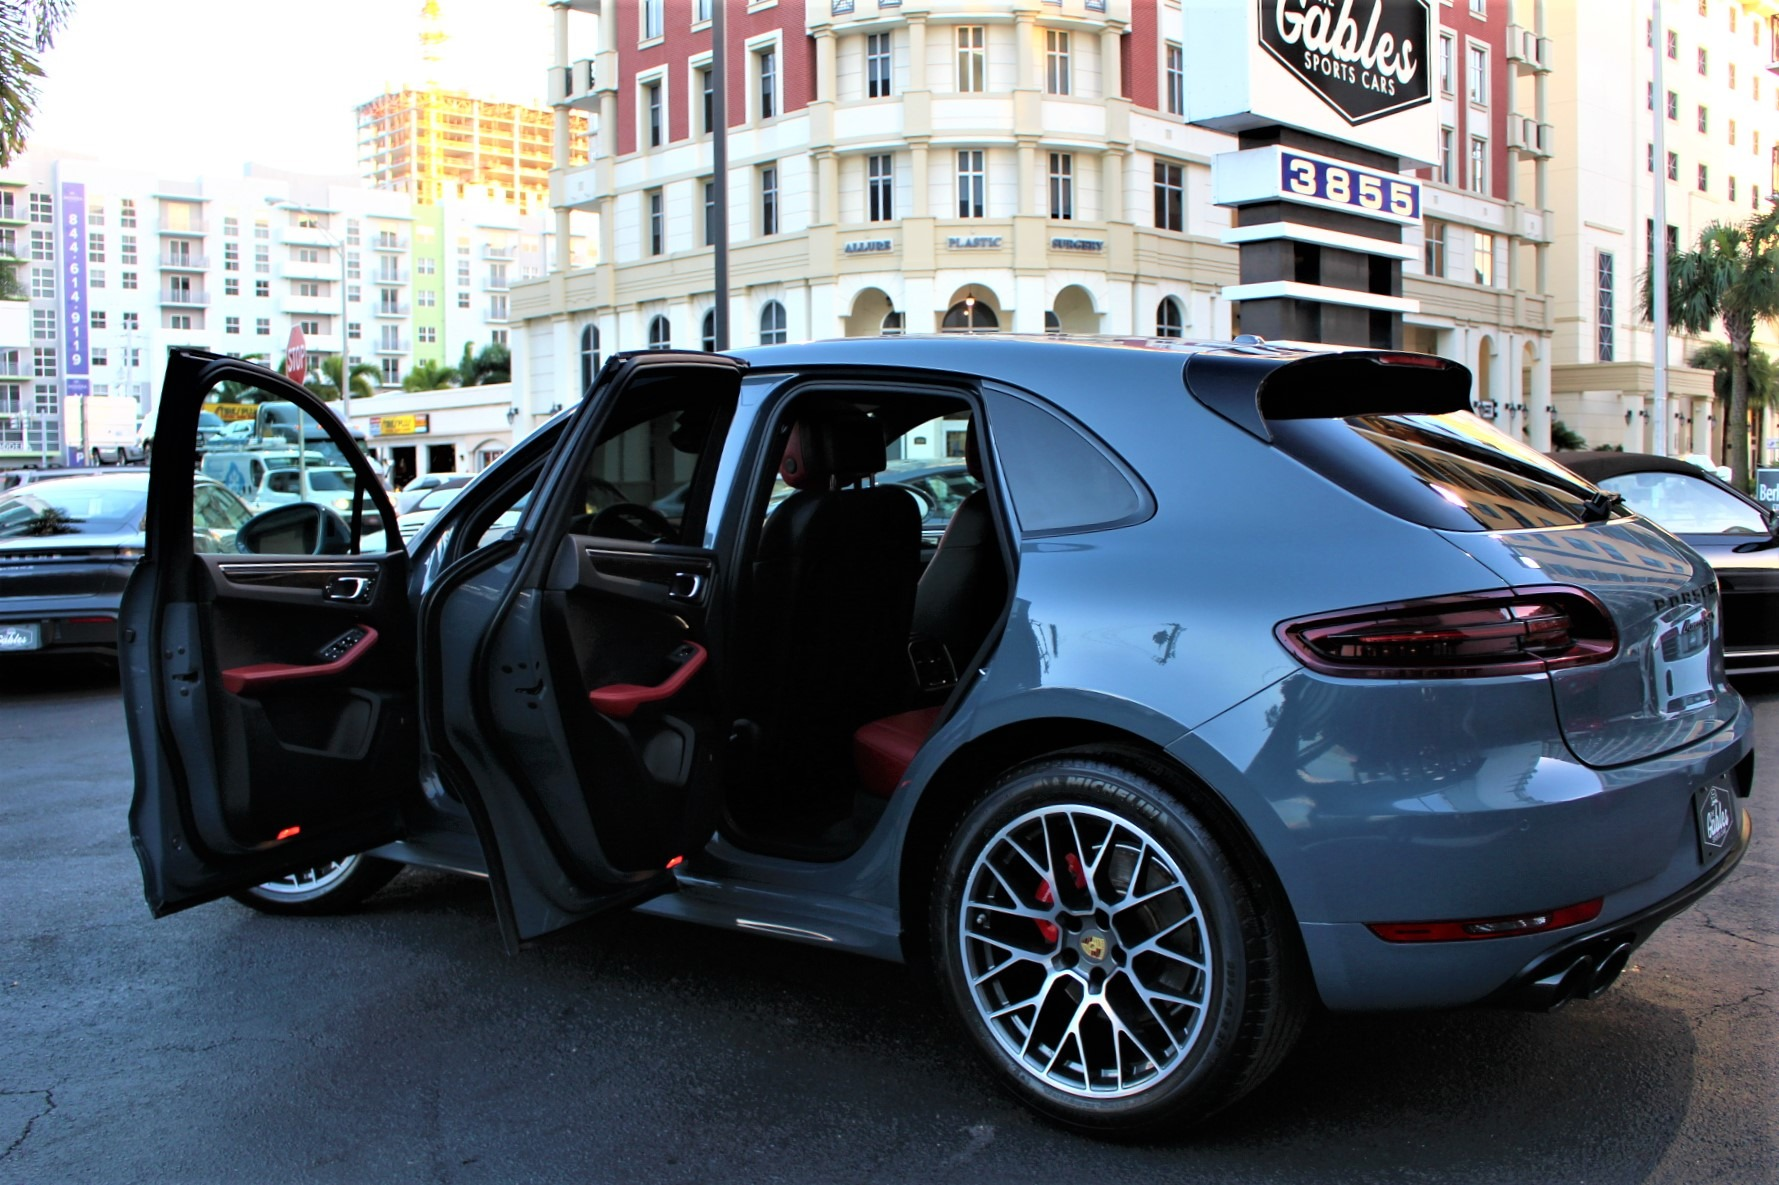 Used 2018 Porsche Macan GTS for sale $73,850 at The Gables Sports Cars in Miami FL 33146 4